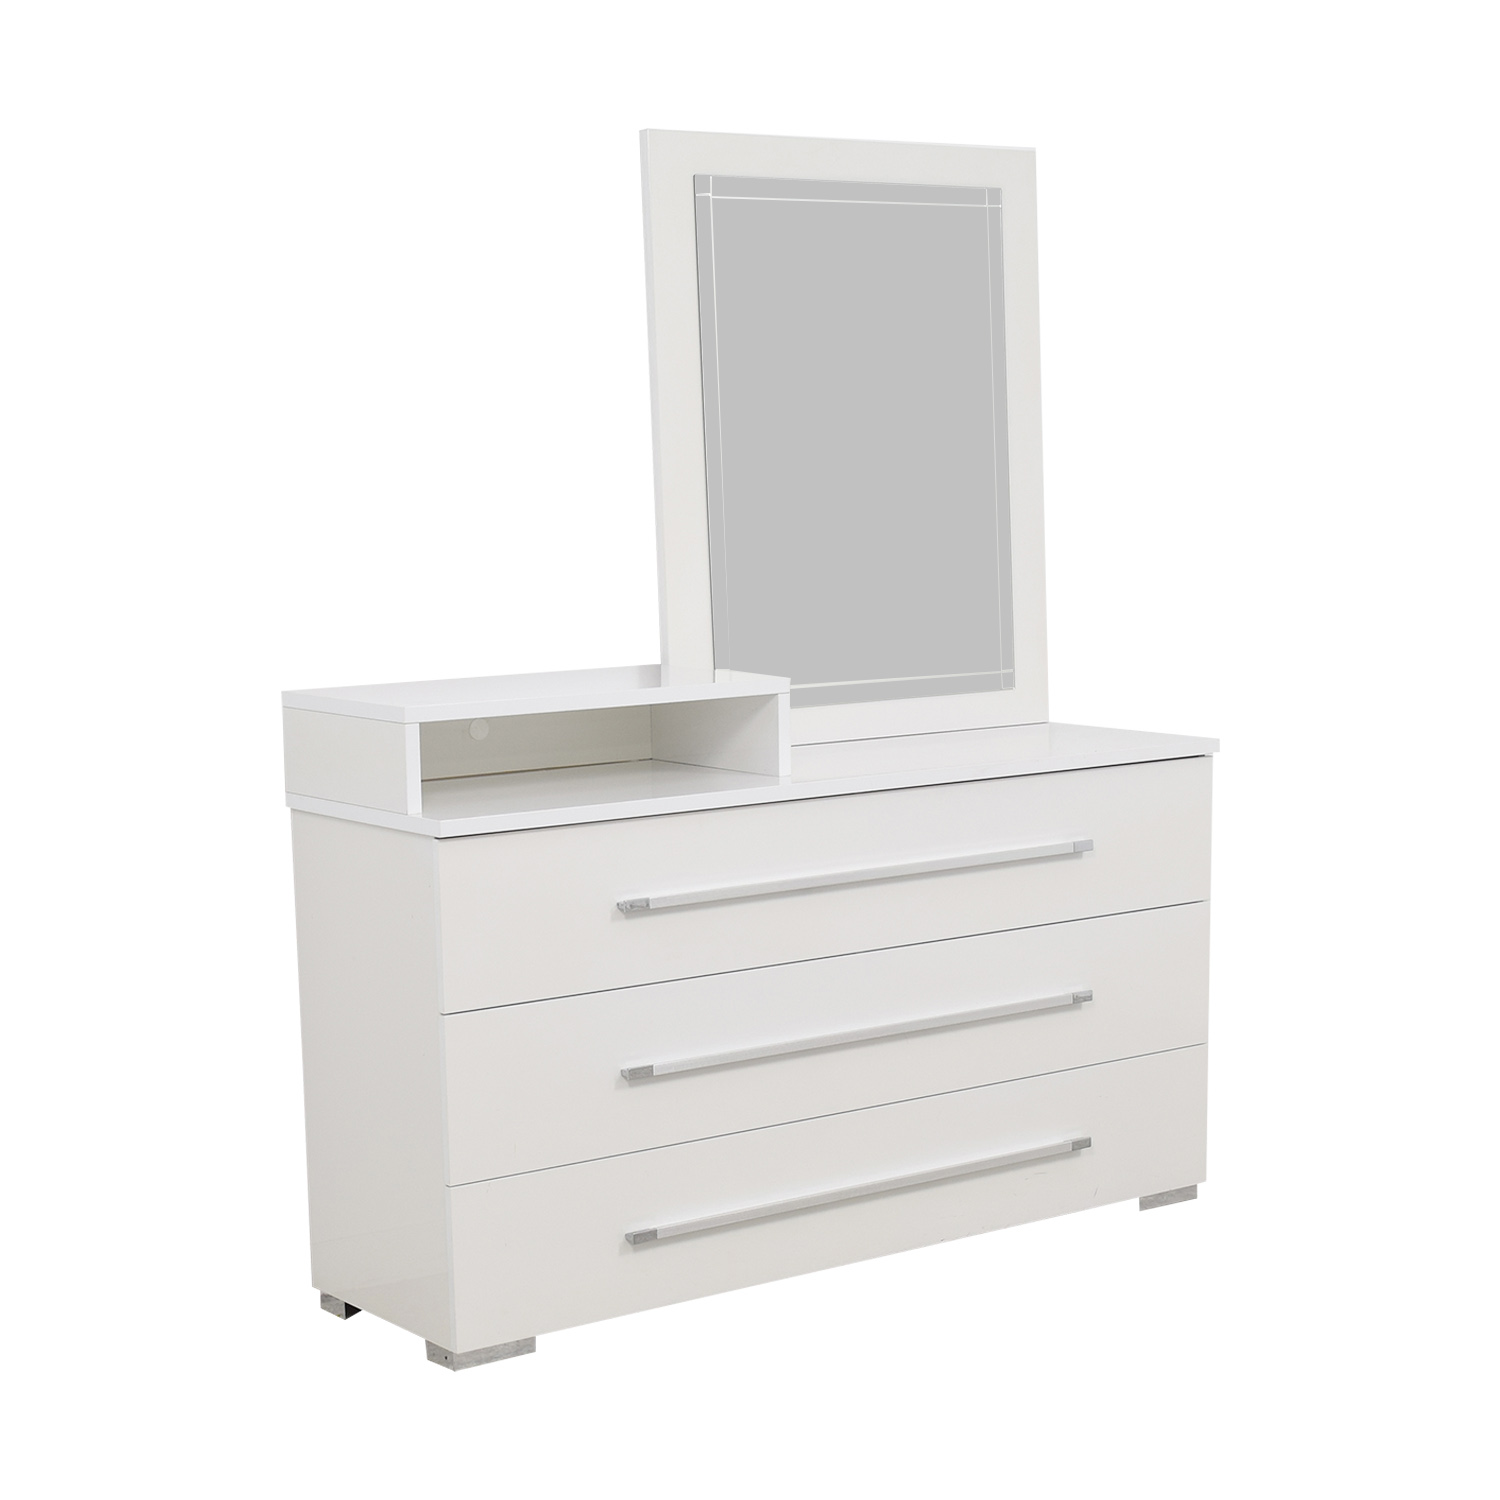 Value City Furniture Value City Furniture White Dresser with Deck and Mirror discount